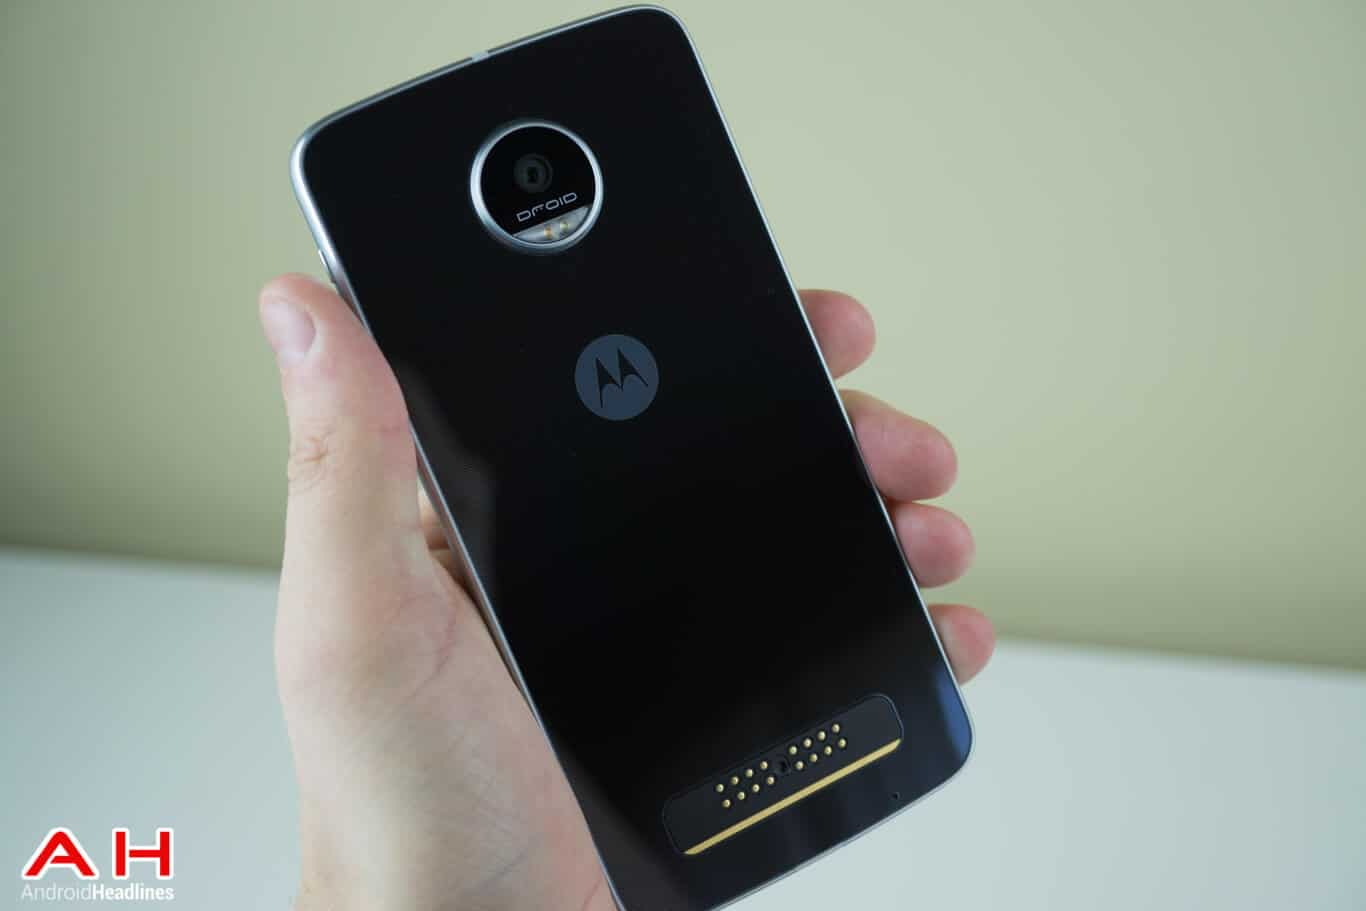 European Moto Z Play Users Now Receiving Android Nougat